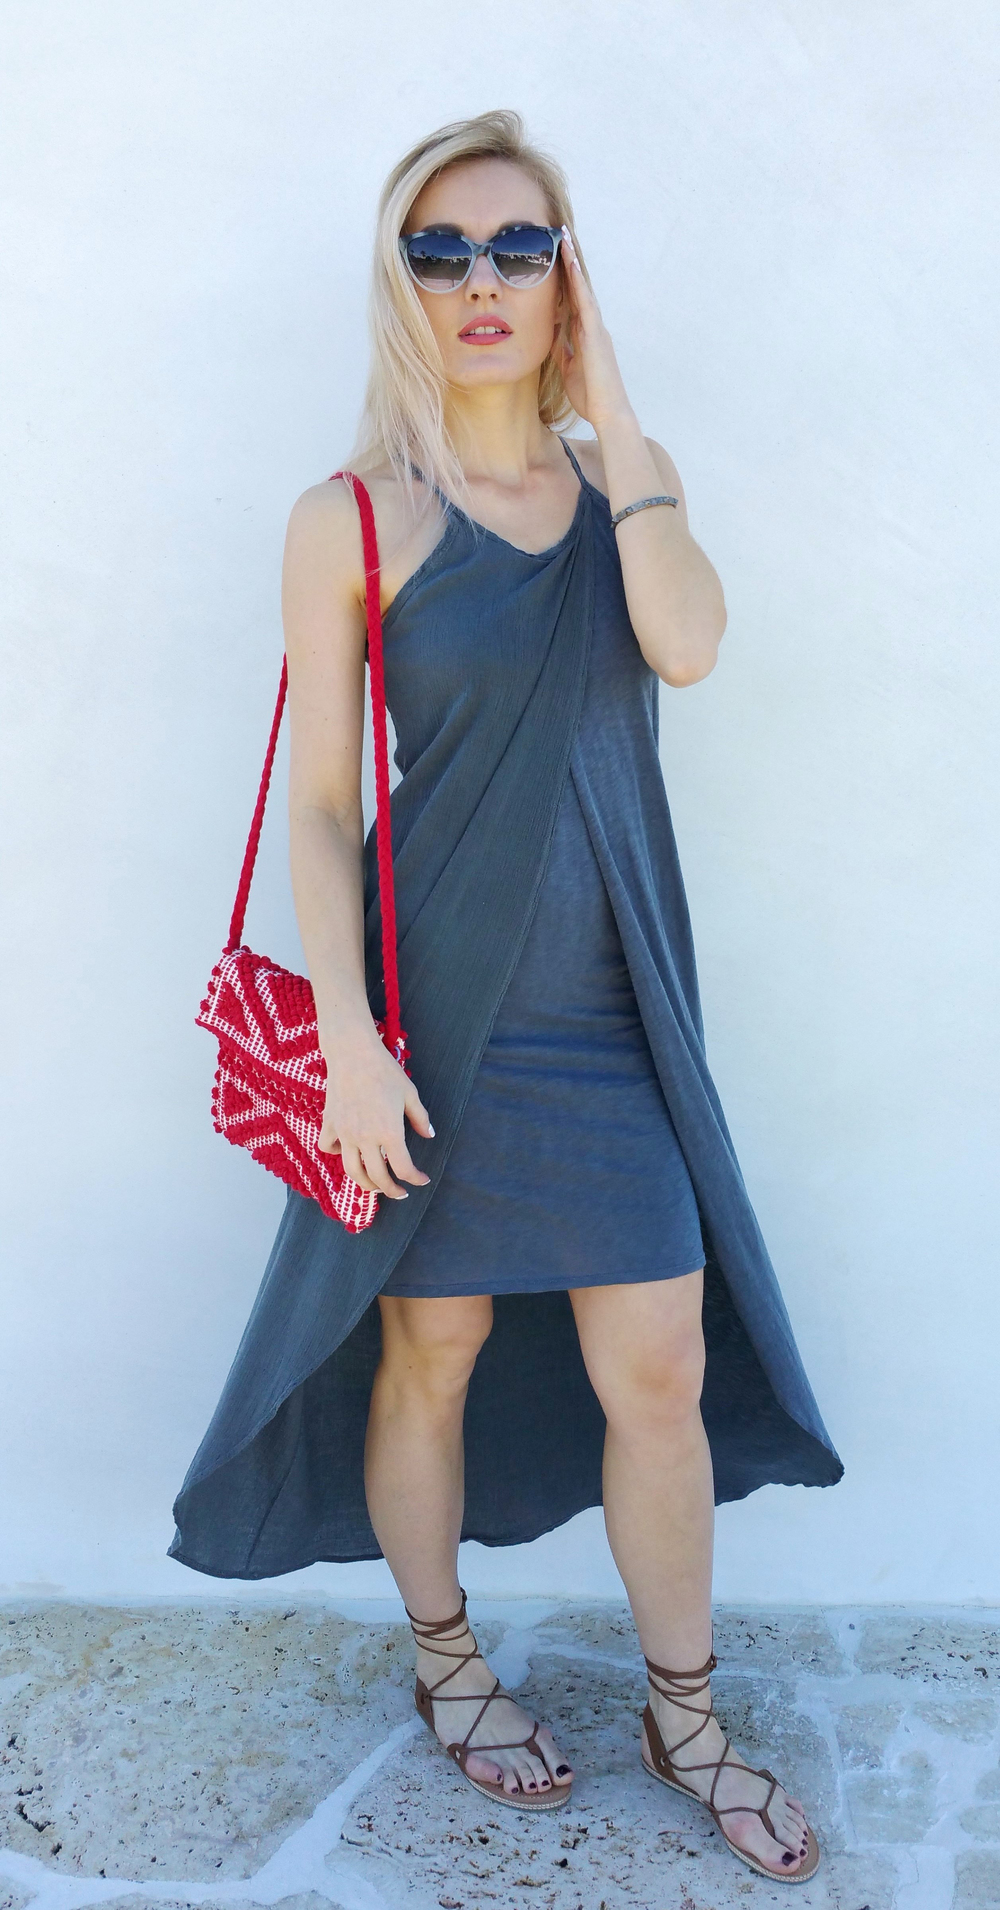 Marta is wearing gray high-low dress by Stateside, red hand bag by Antonello, sandals by LeSwim, Krewe du Optic sunnies & studded bracelet by S Carter.